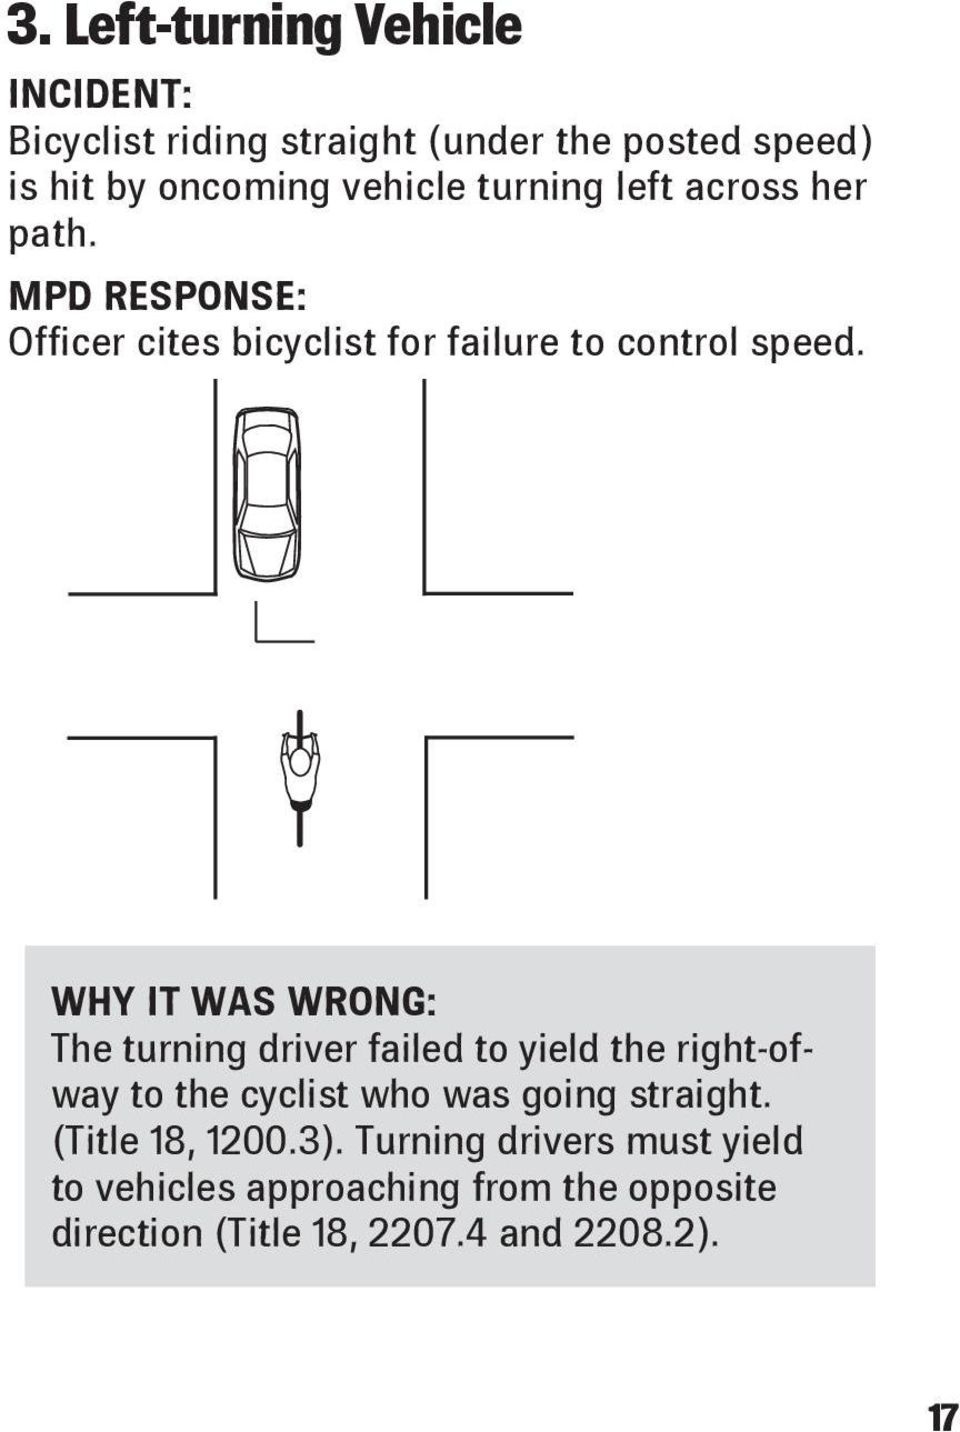 WHY IT WAS WRONG: The turning driver failed to yield the right-ofway to the cyclist who was going straight.